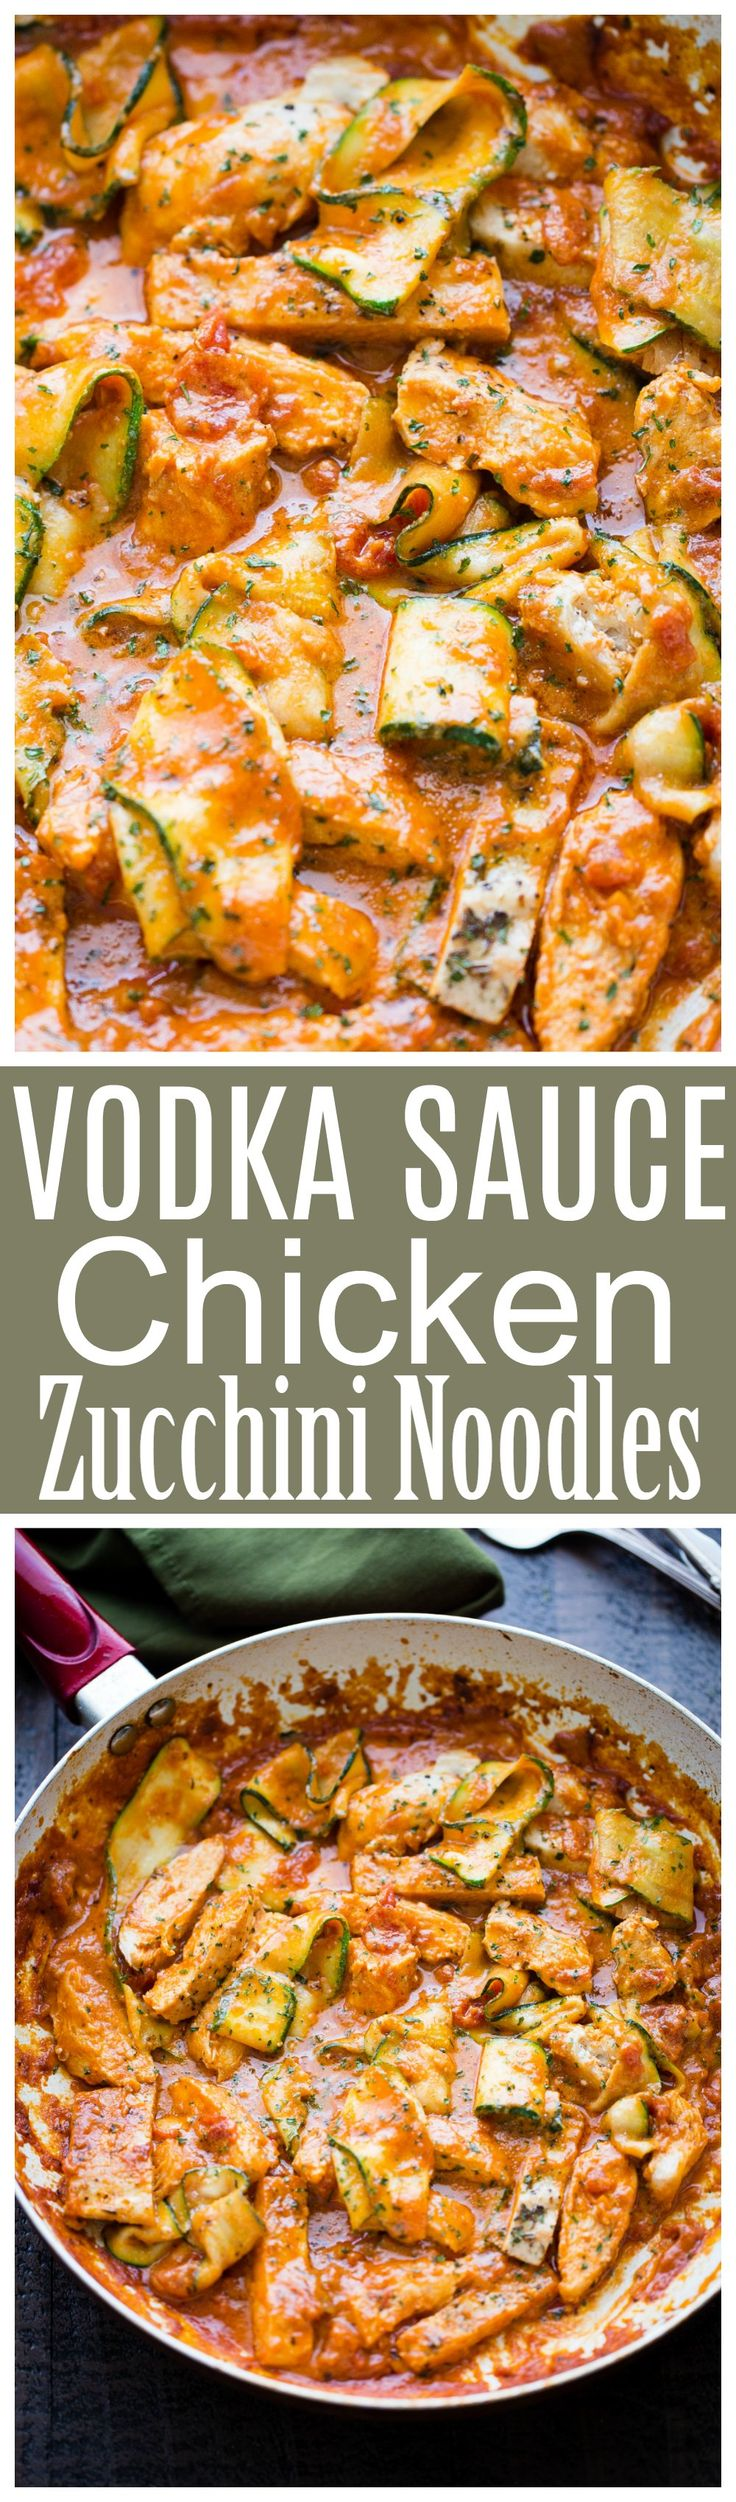 Vodka Sauce Chicken Zucchini Noodles – Easy, quick, but SO delicious Zucchini Noodles and Chicken tossed with homemade Vodka Sauce.